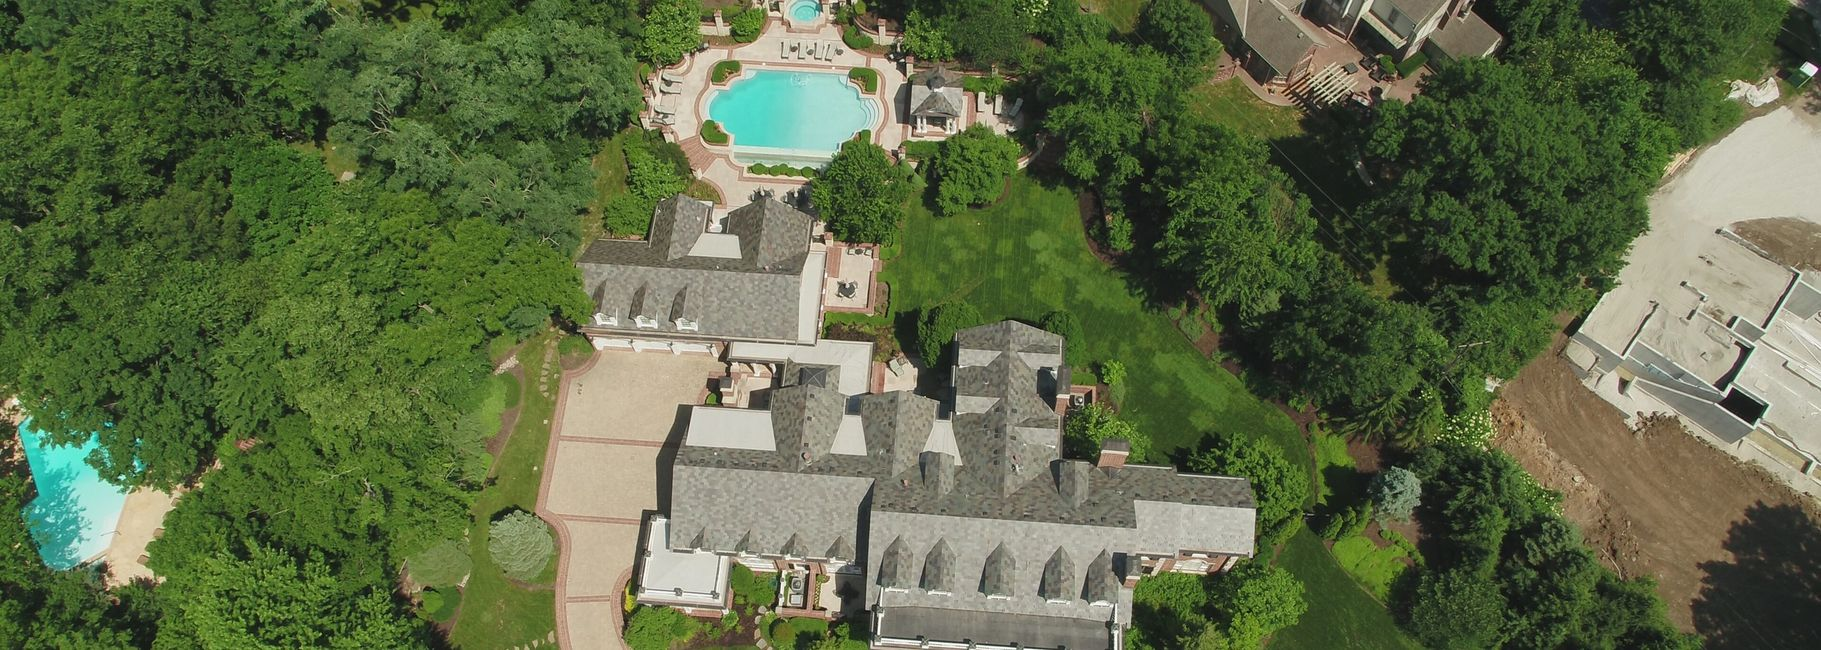 Drone On Demand Aerial Drone Photo of Residential Real Estate Listing in Mission Hills, Kansas